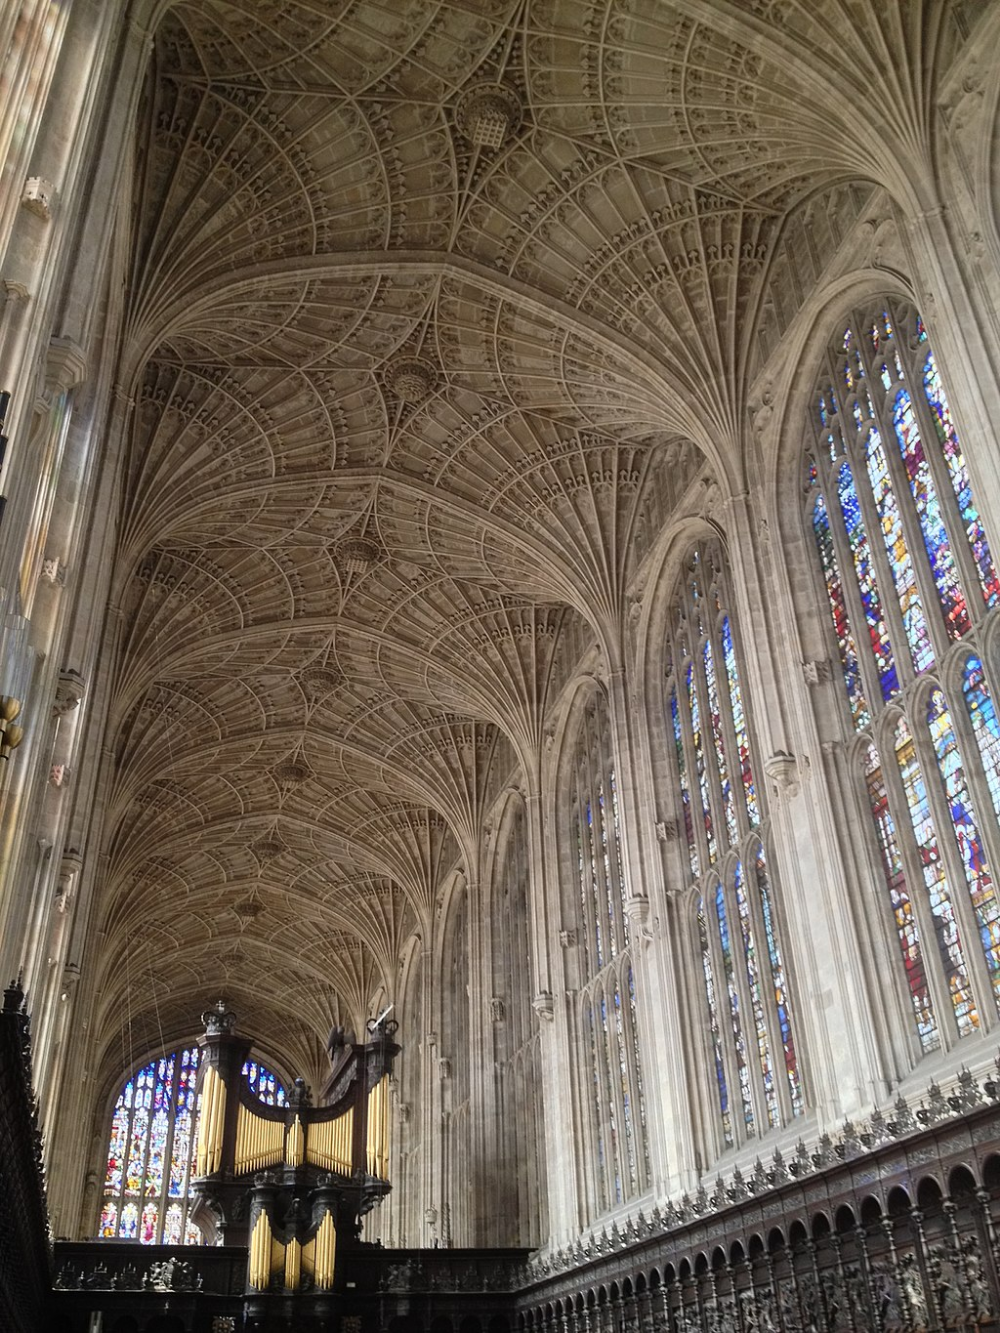 King S College Chapel Is The Chapel At King S College In The University Of Cambridge It I English Architecture Cathedral Architecture Renaissance Architecture